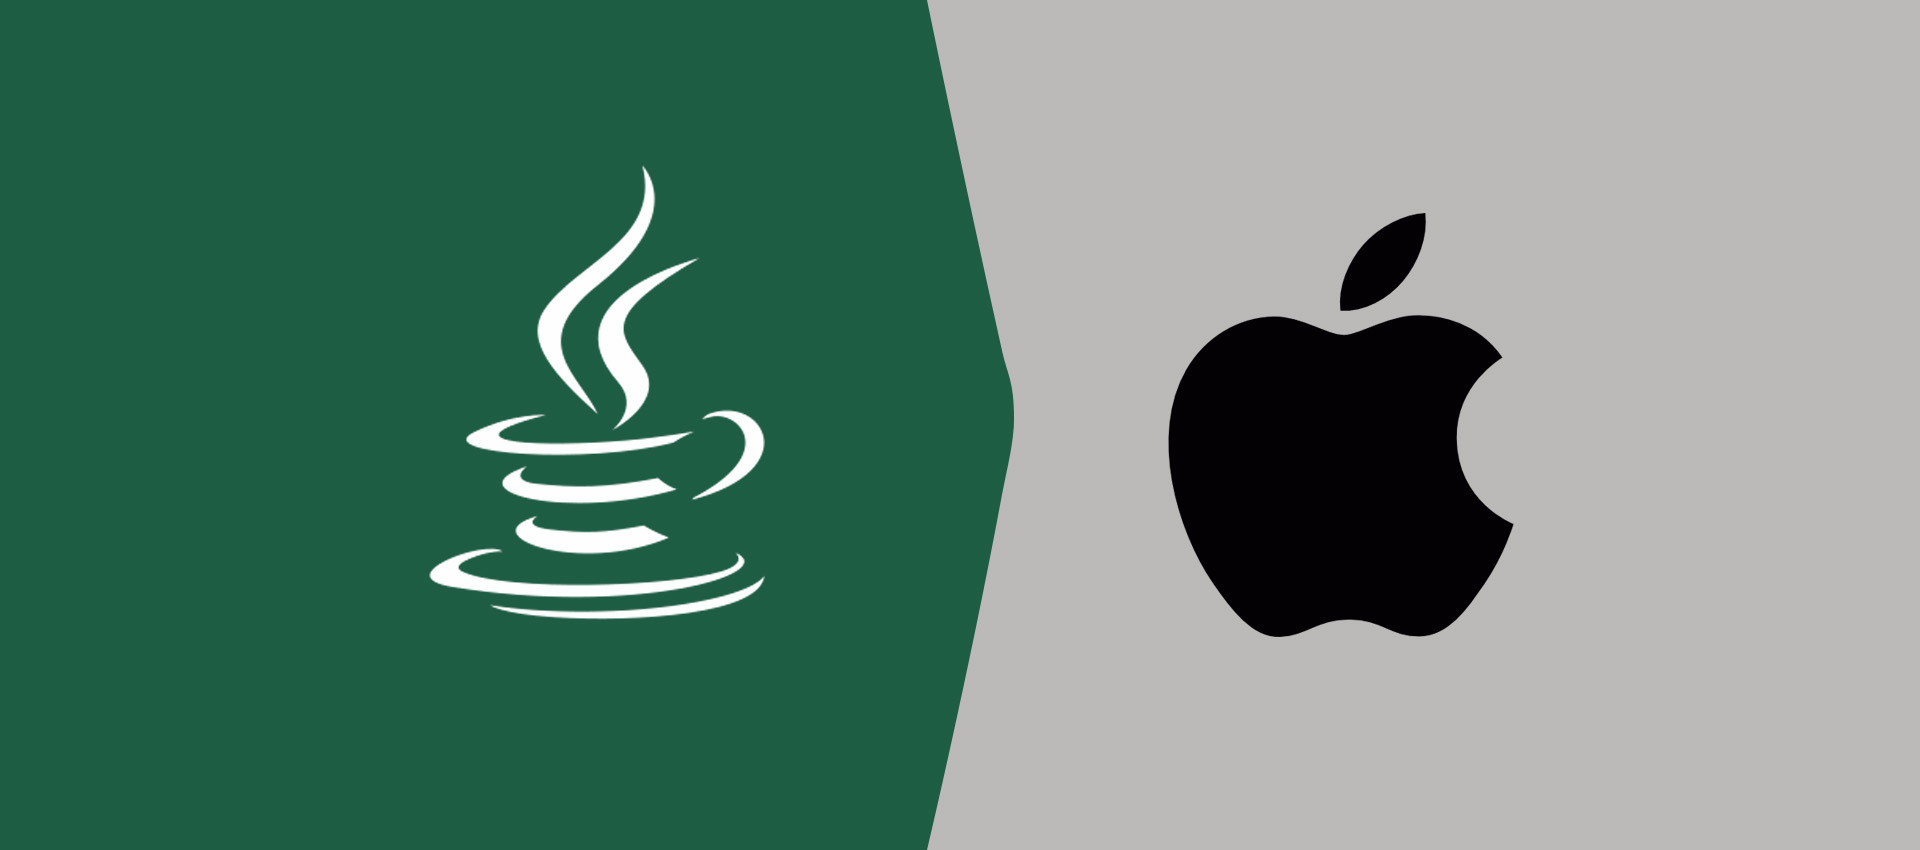 How To Install Java 14 On Mac